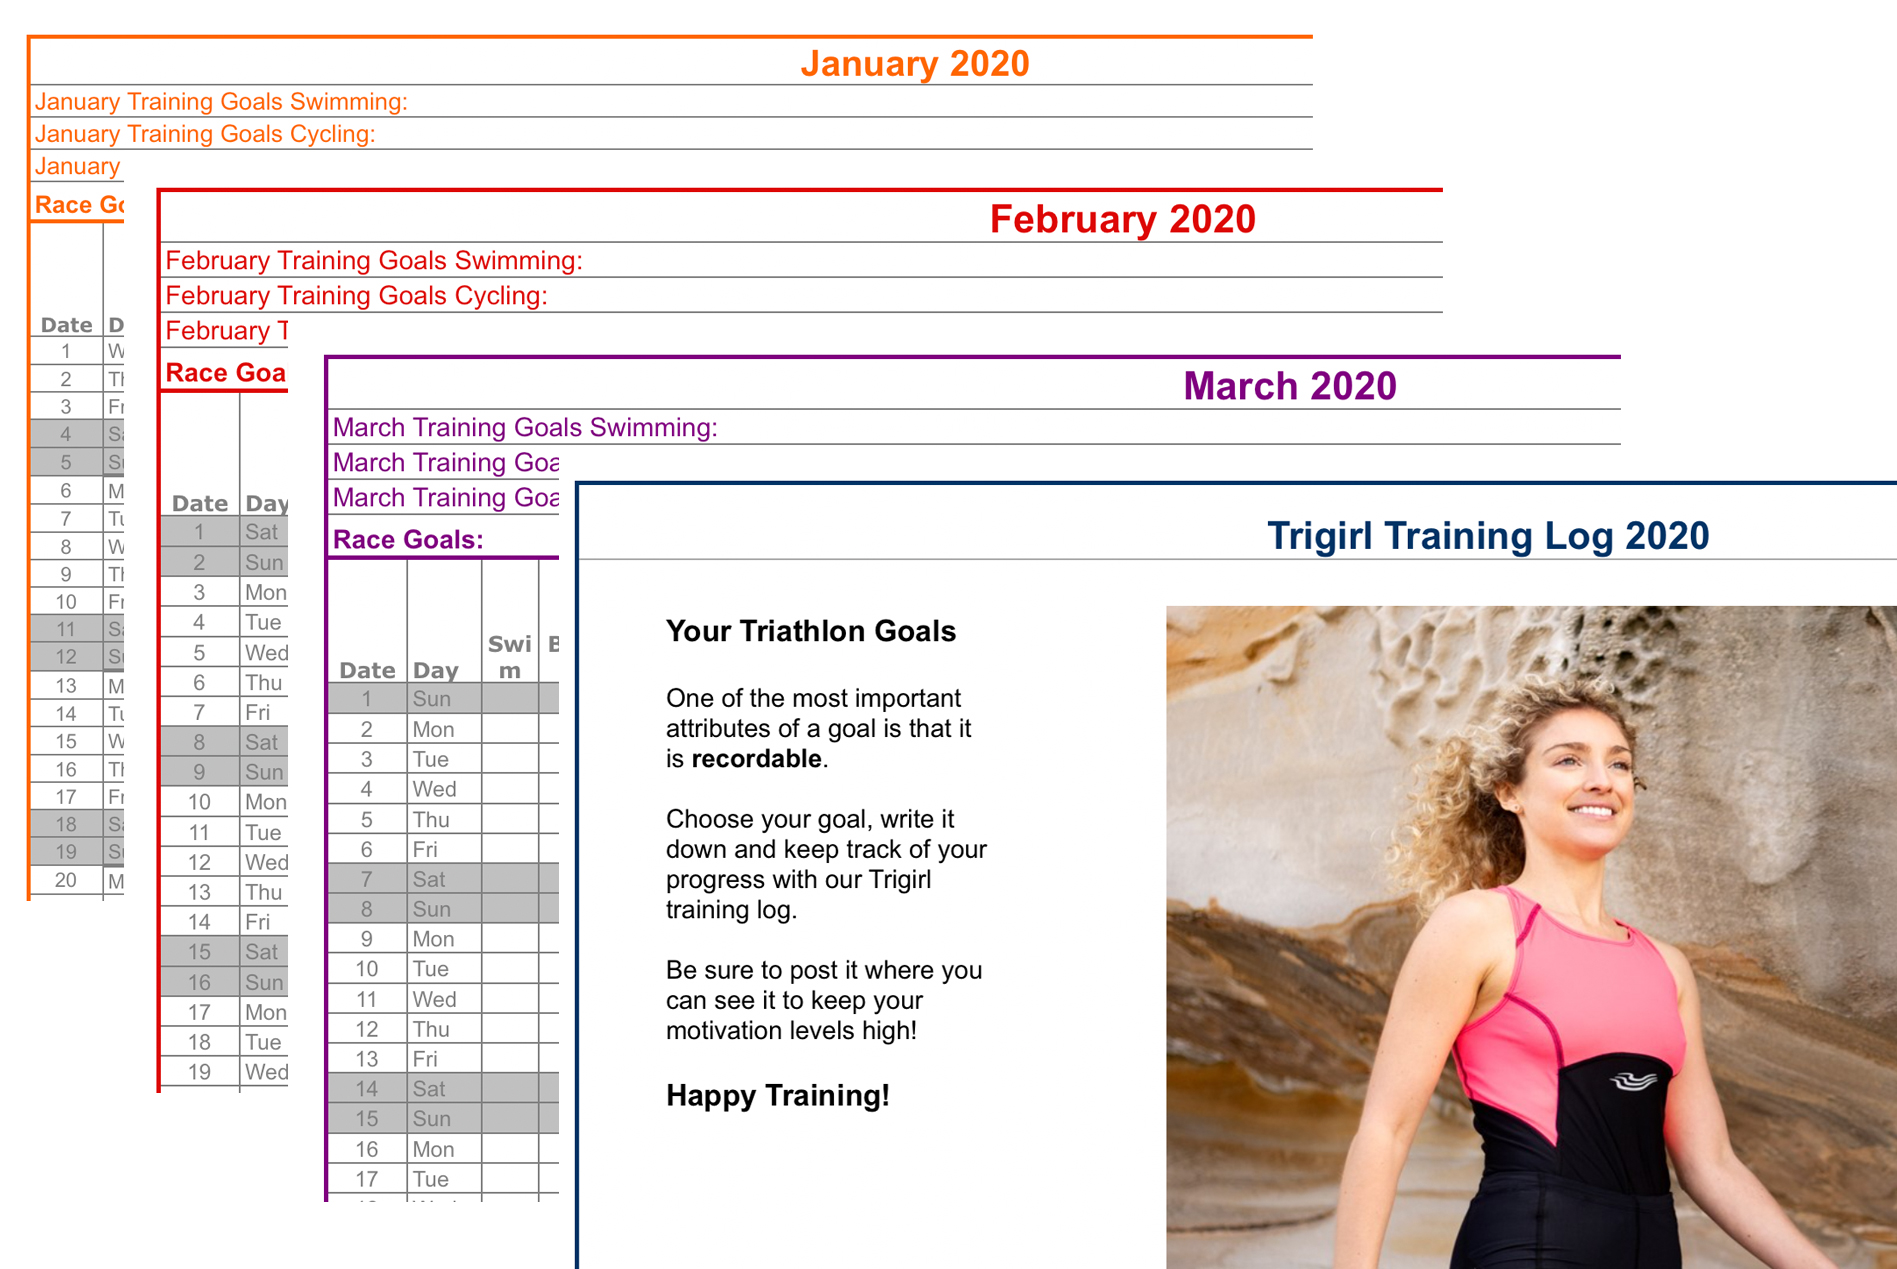 Triathlon training log 2020